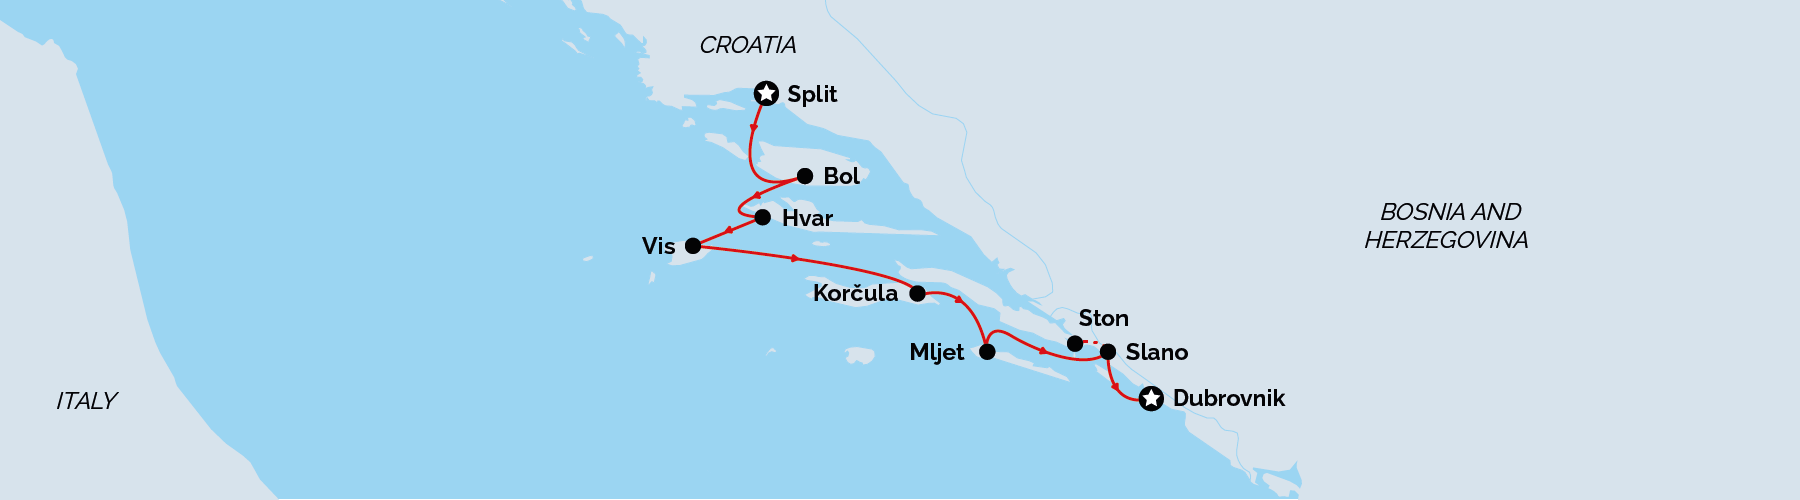 Split to Dubrovnik Deluxe Cruise Map